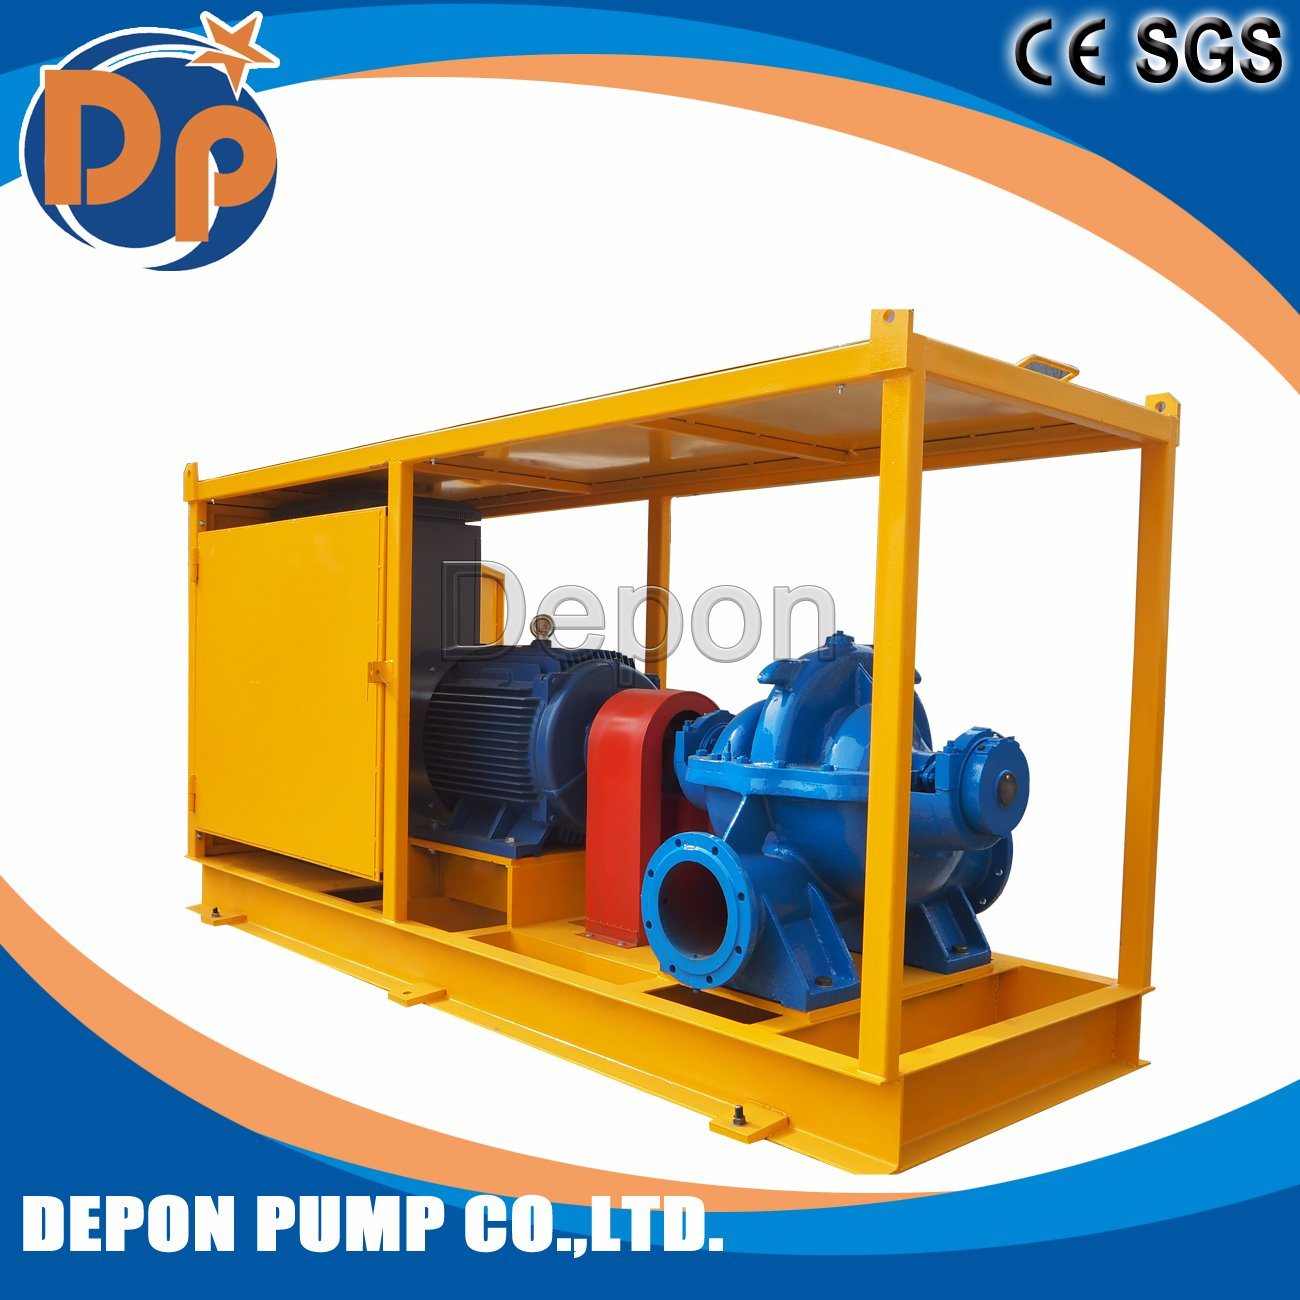 S Series Double Suction Split Case Water Pump